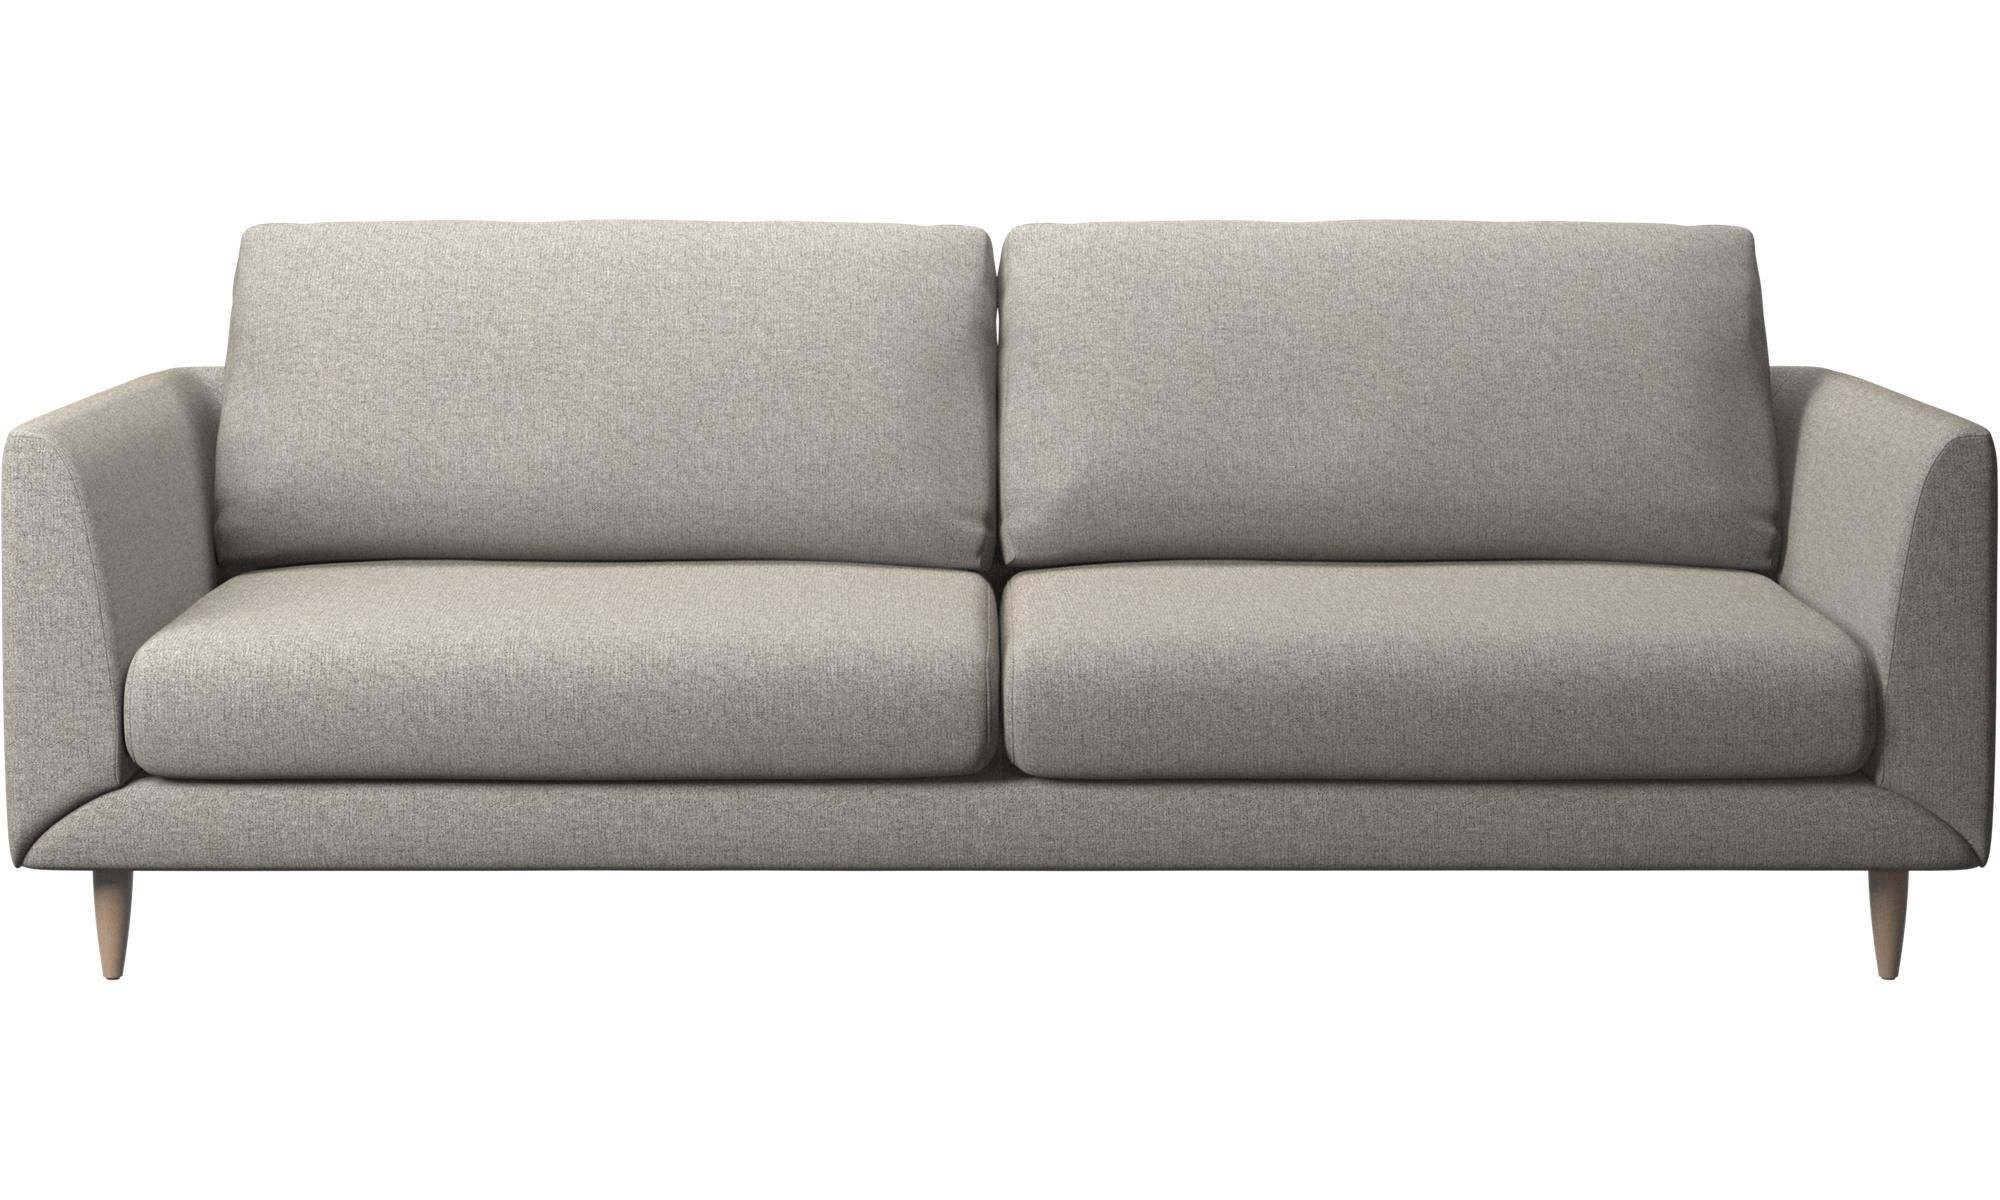 rp sofa dimensions luxury sleeper mattress how much does a three seater weigh brokeasshome